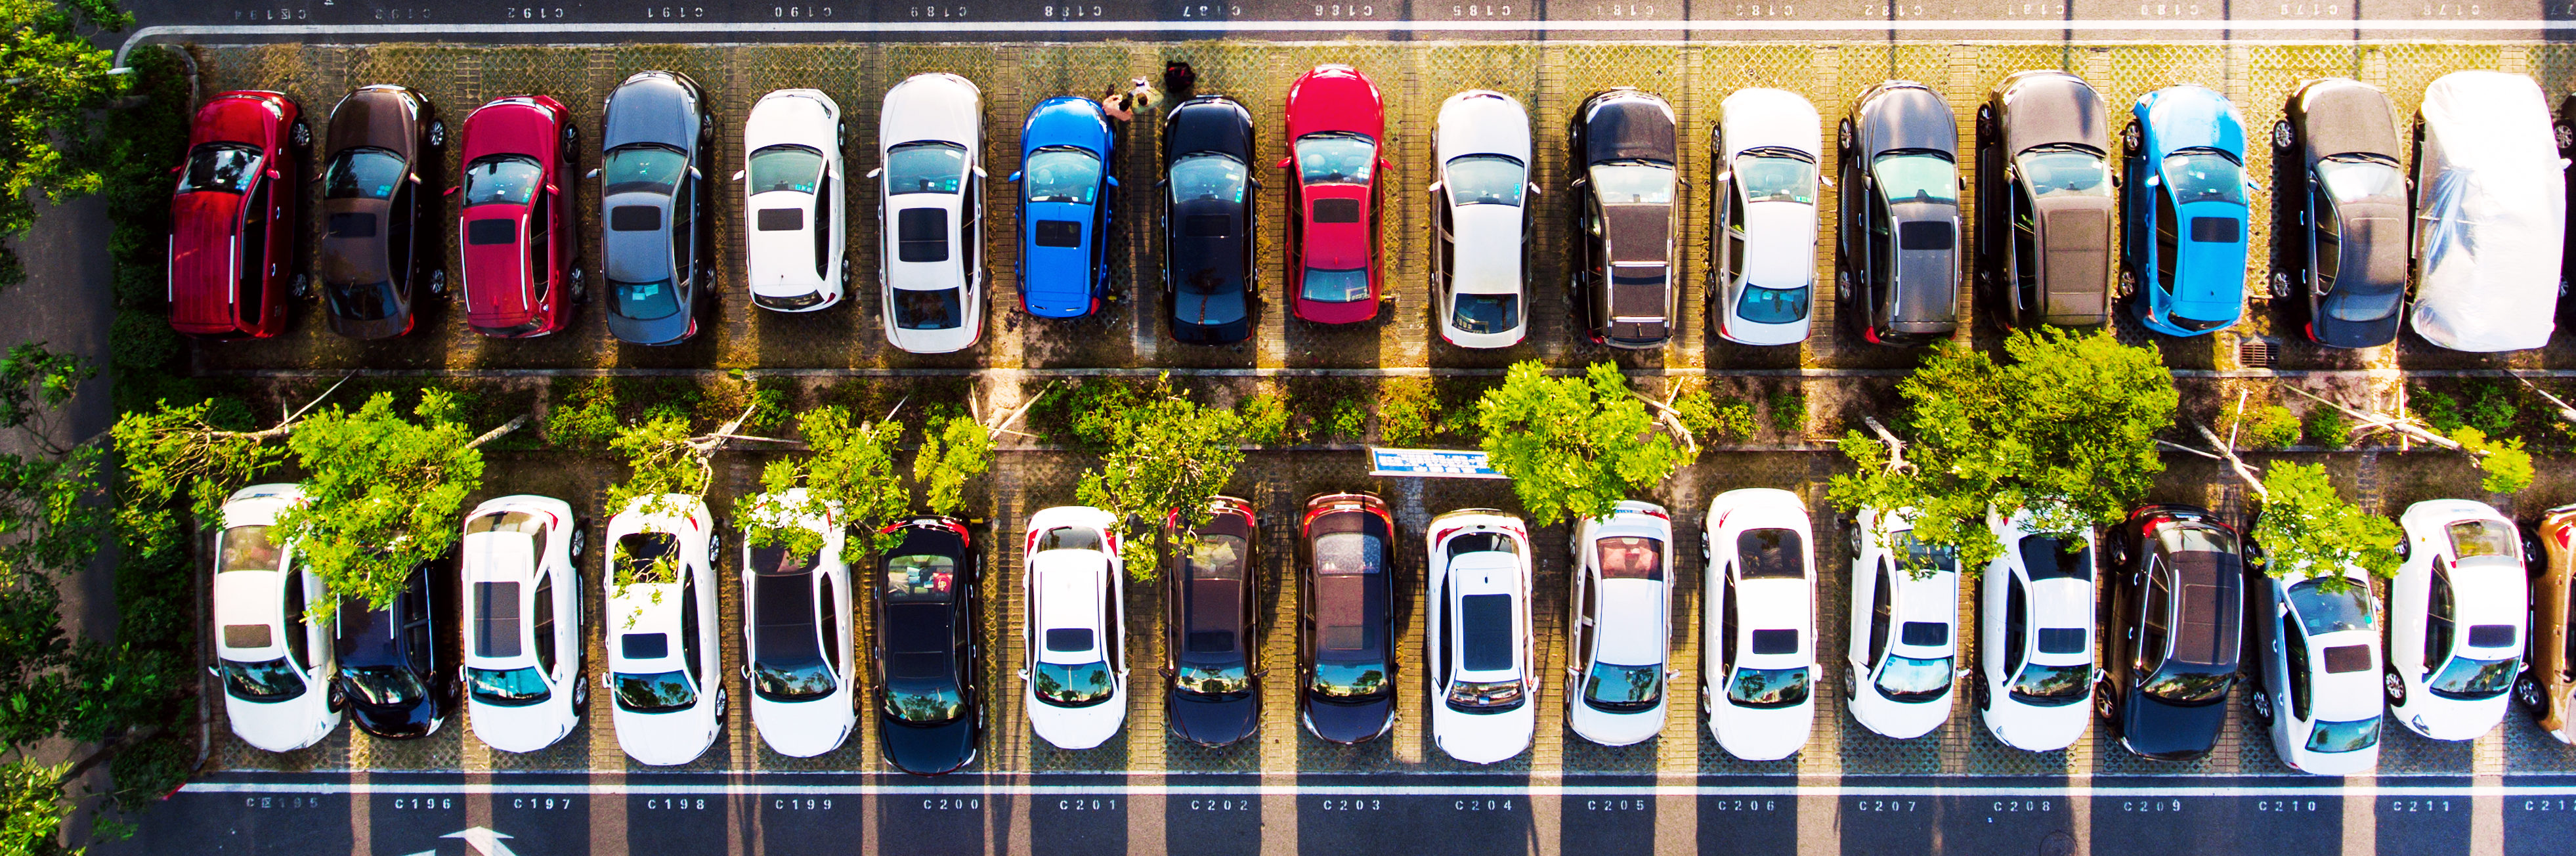 Overhead view of full parking lot